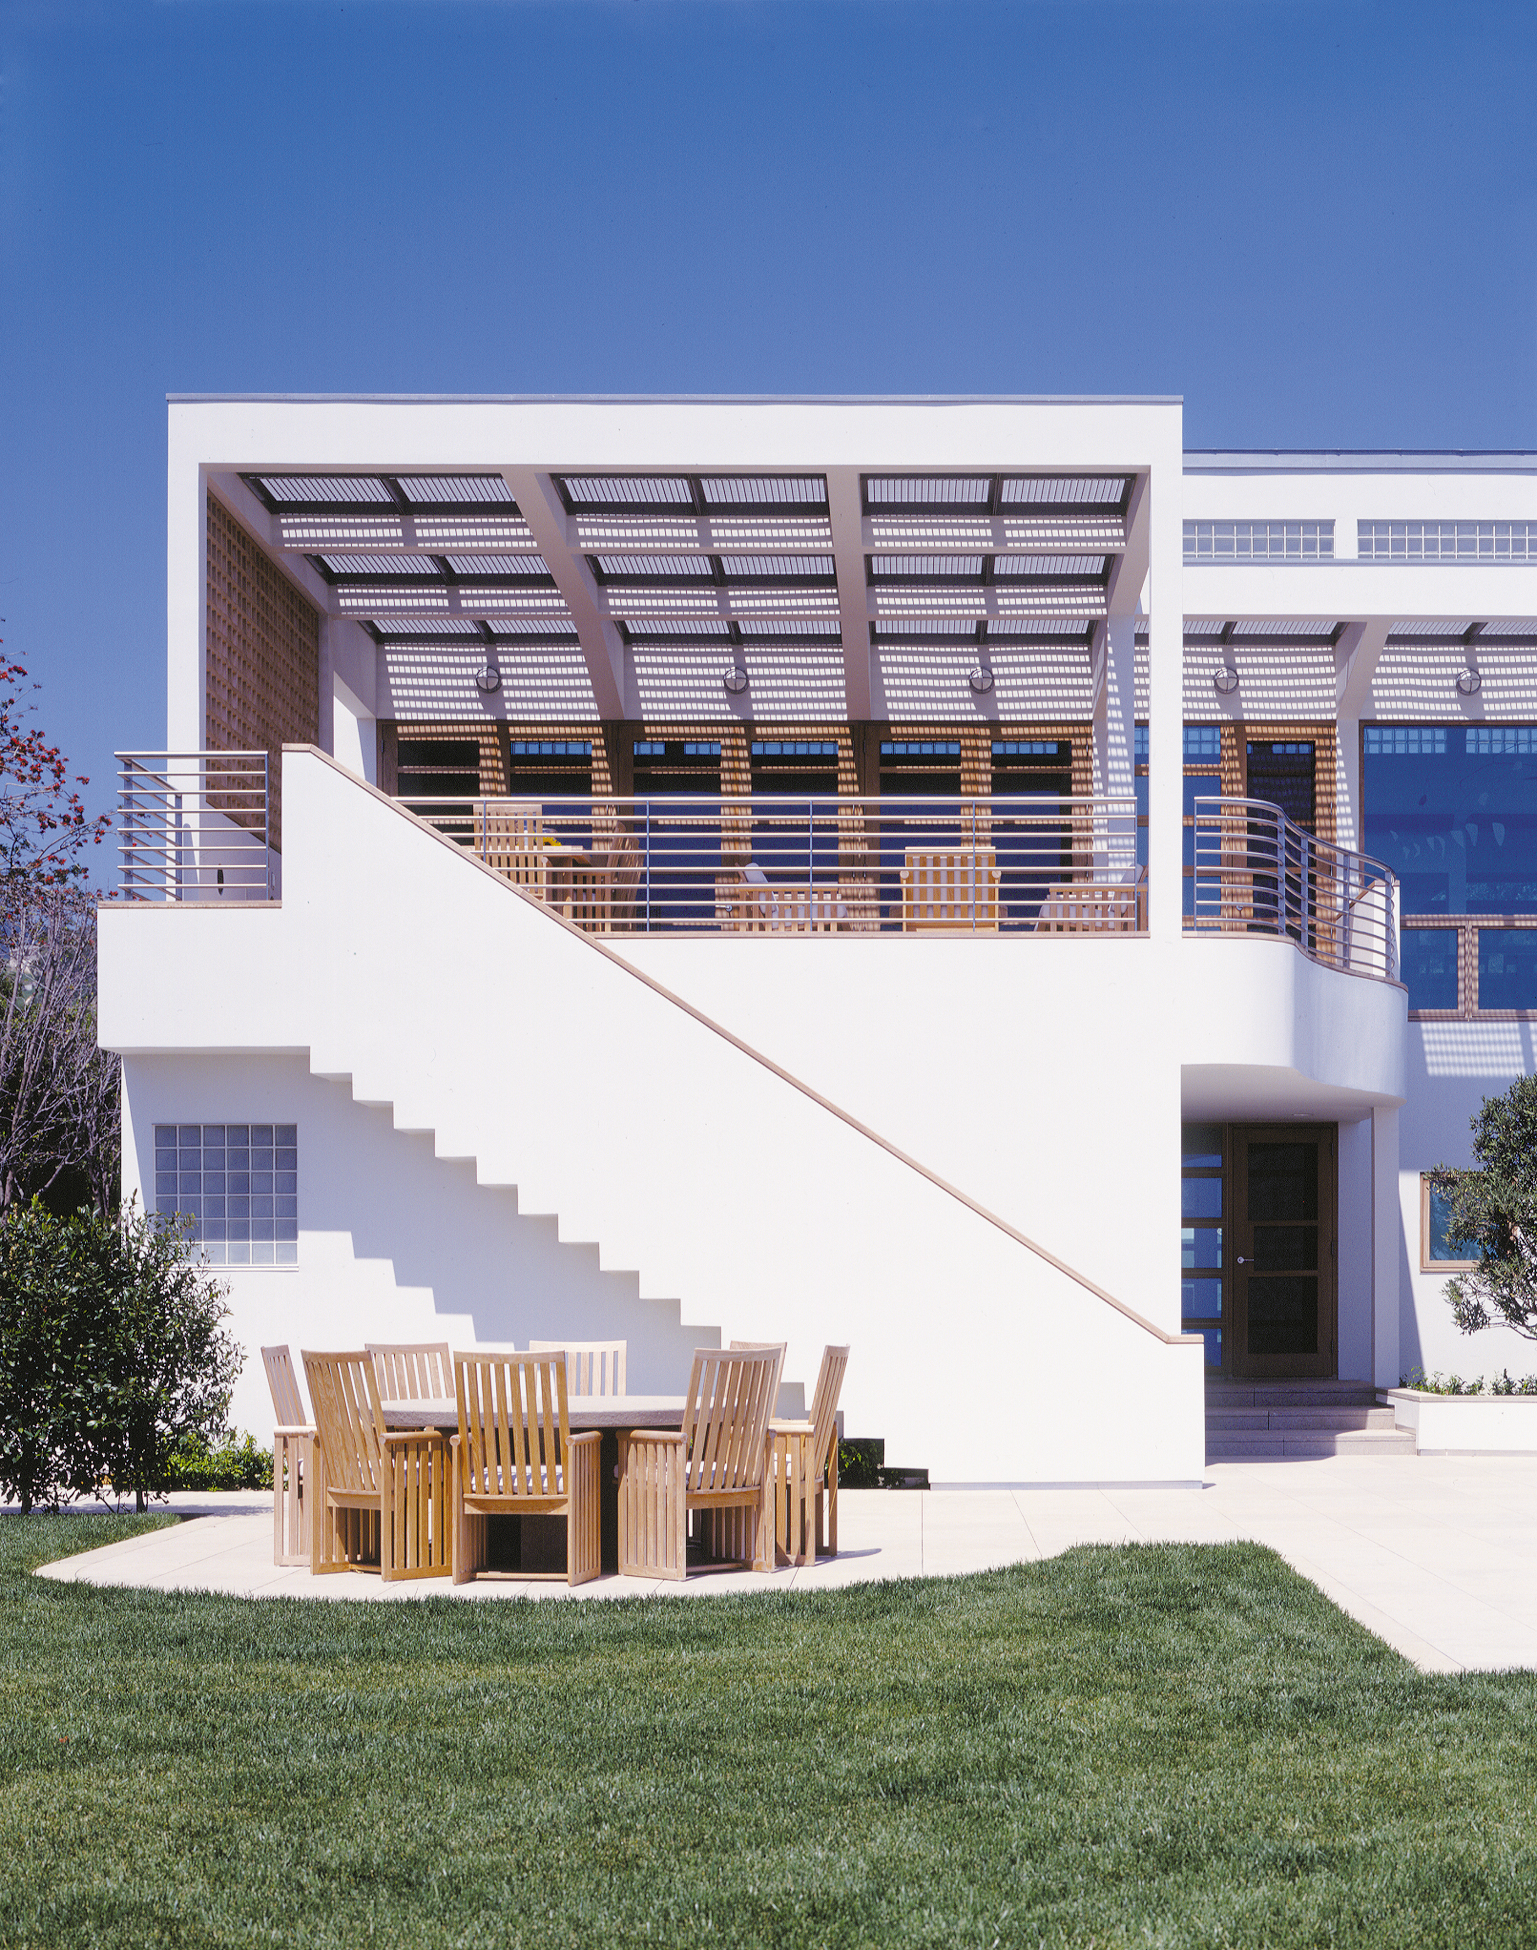 Malibu Residence, California  GSAA: Peter Pawlak, Project Architect